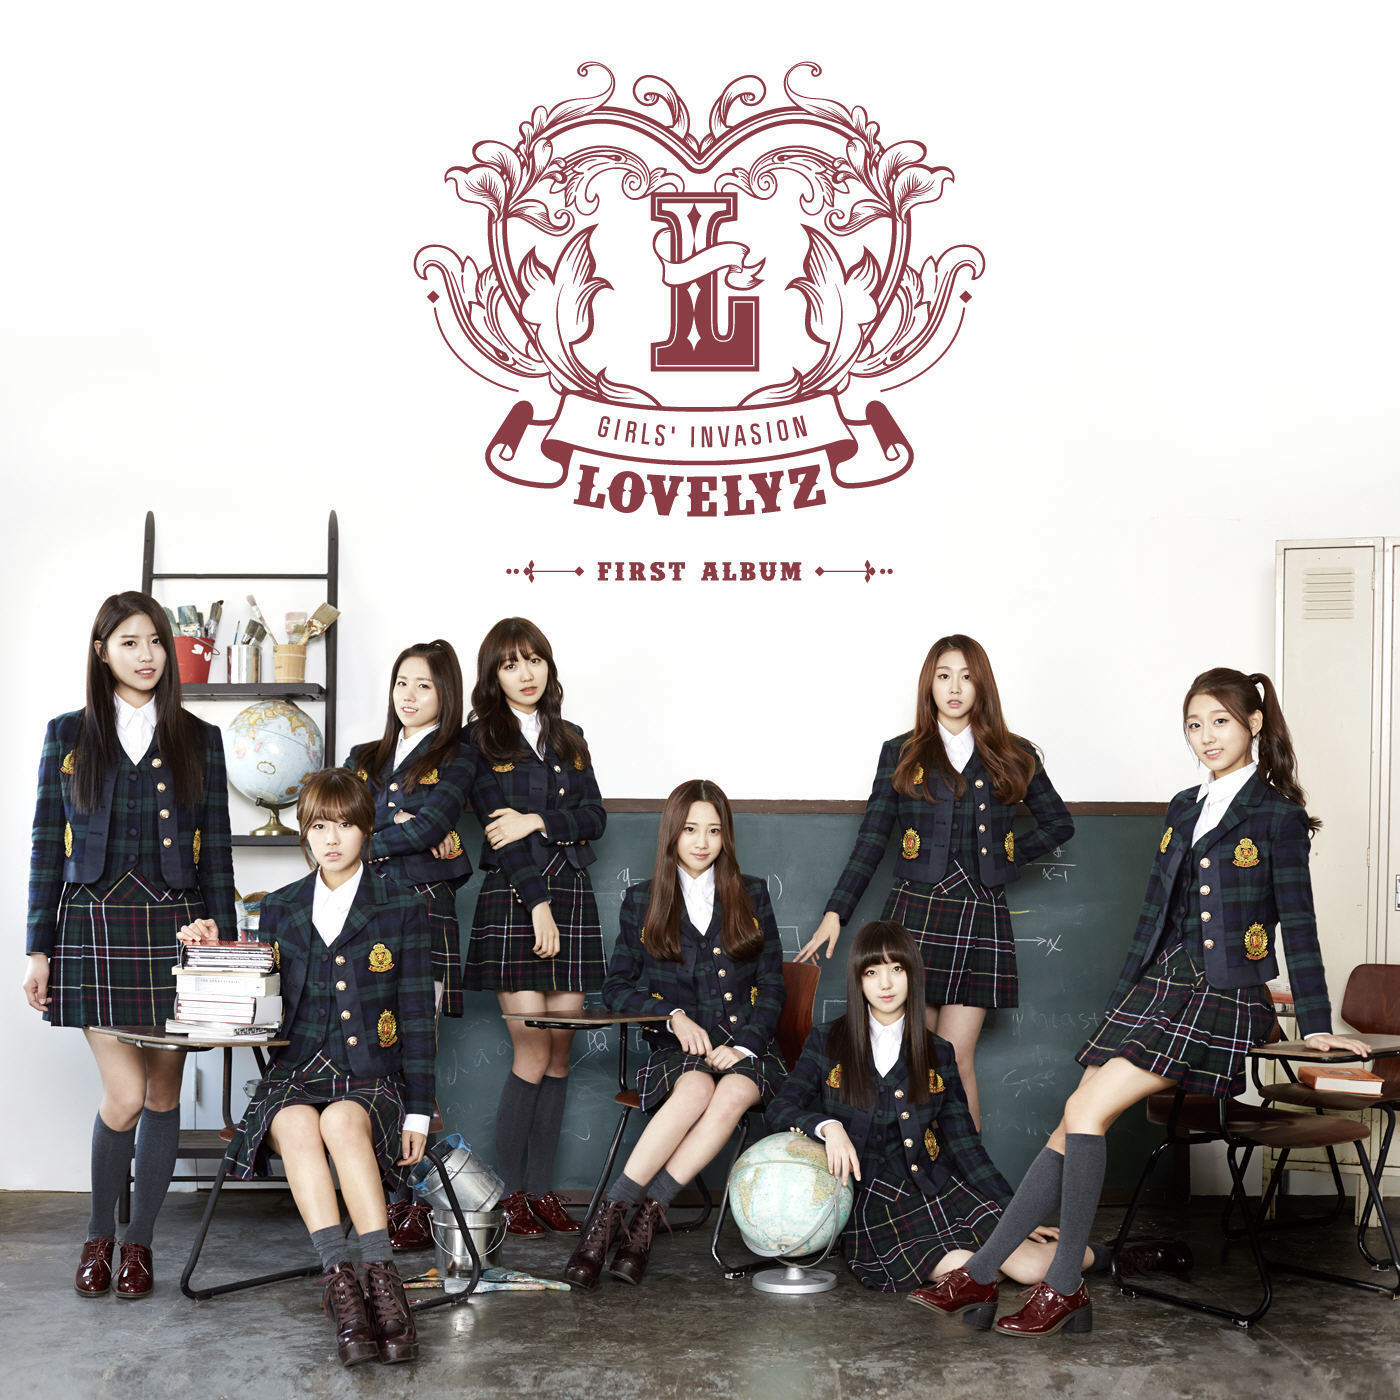 20190110.1240.28 Lovelyz - Girls' Invasion (FLAC) cover.jpg